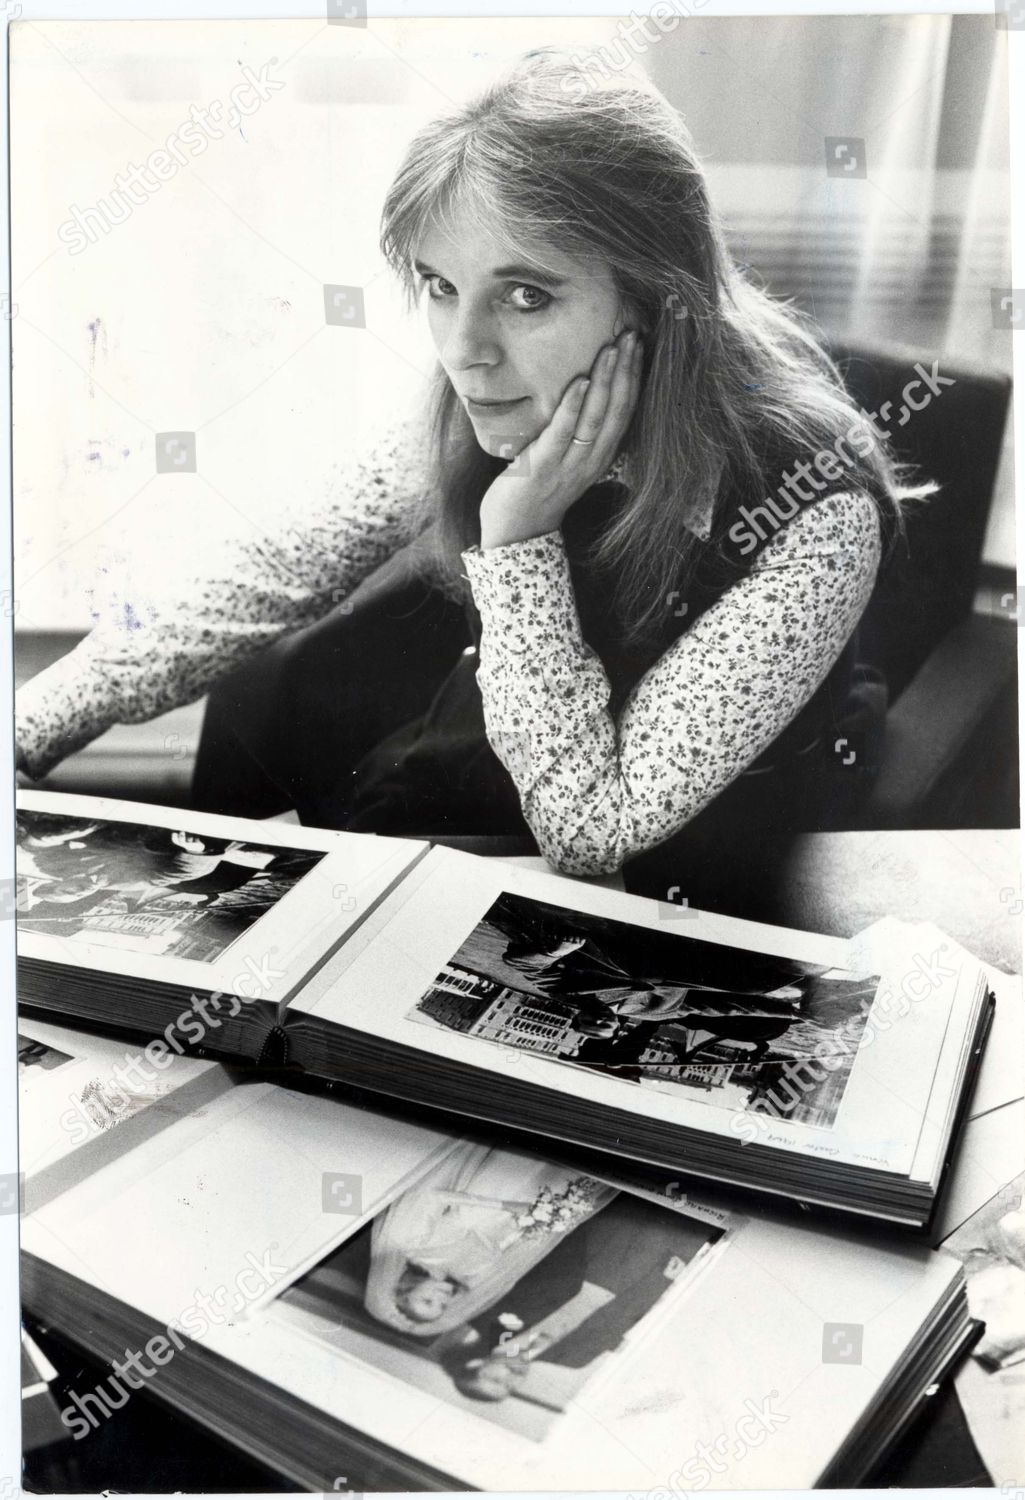 Editorial Who Is Looking Out For These >> Lady Lucan Looking Her Photo Album 1980 Editorial Stock Photo